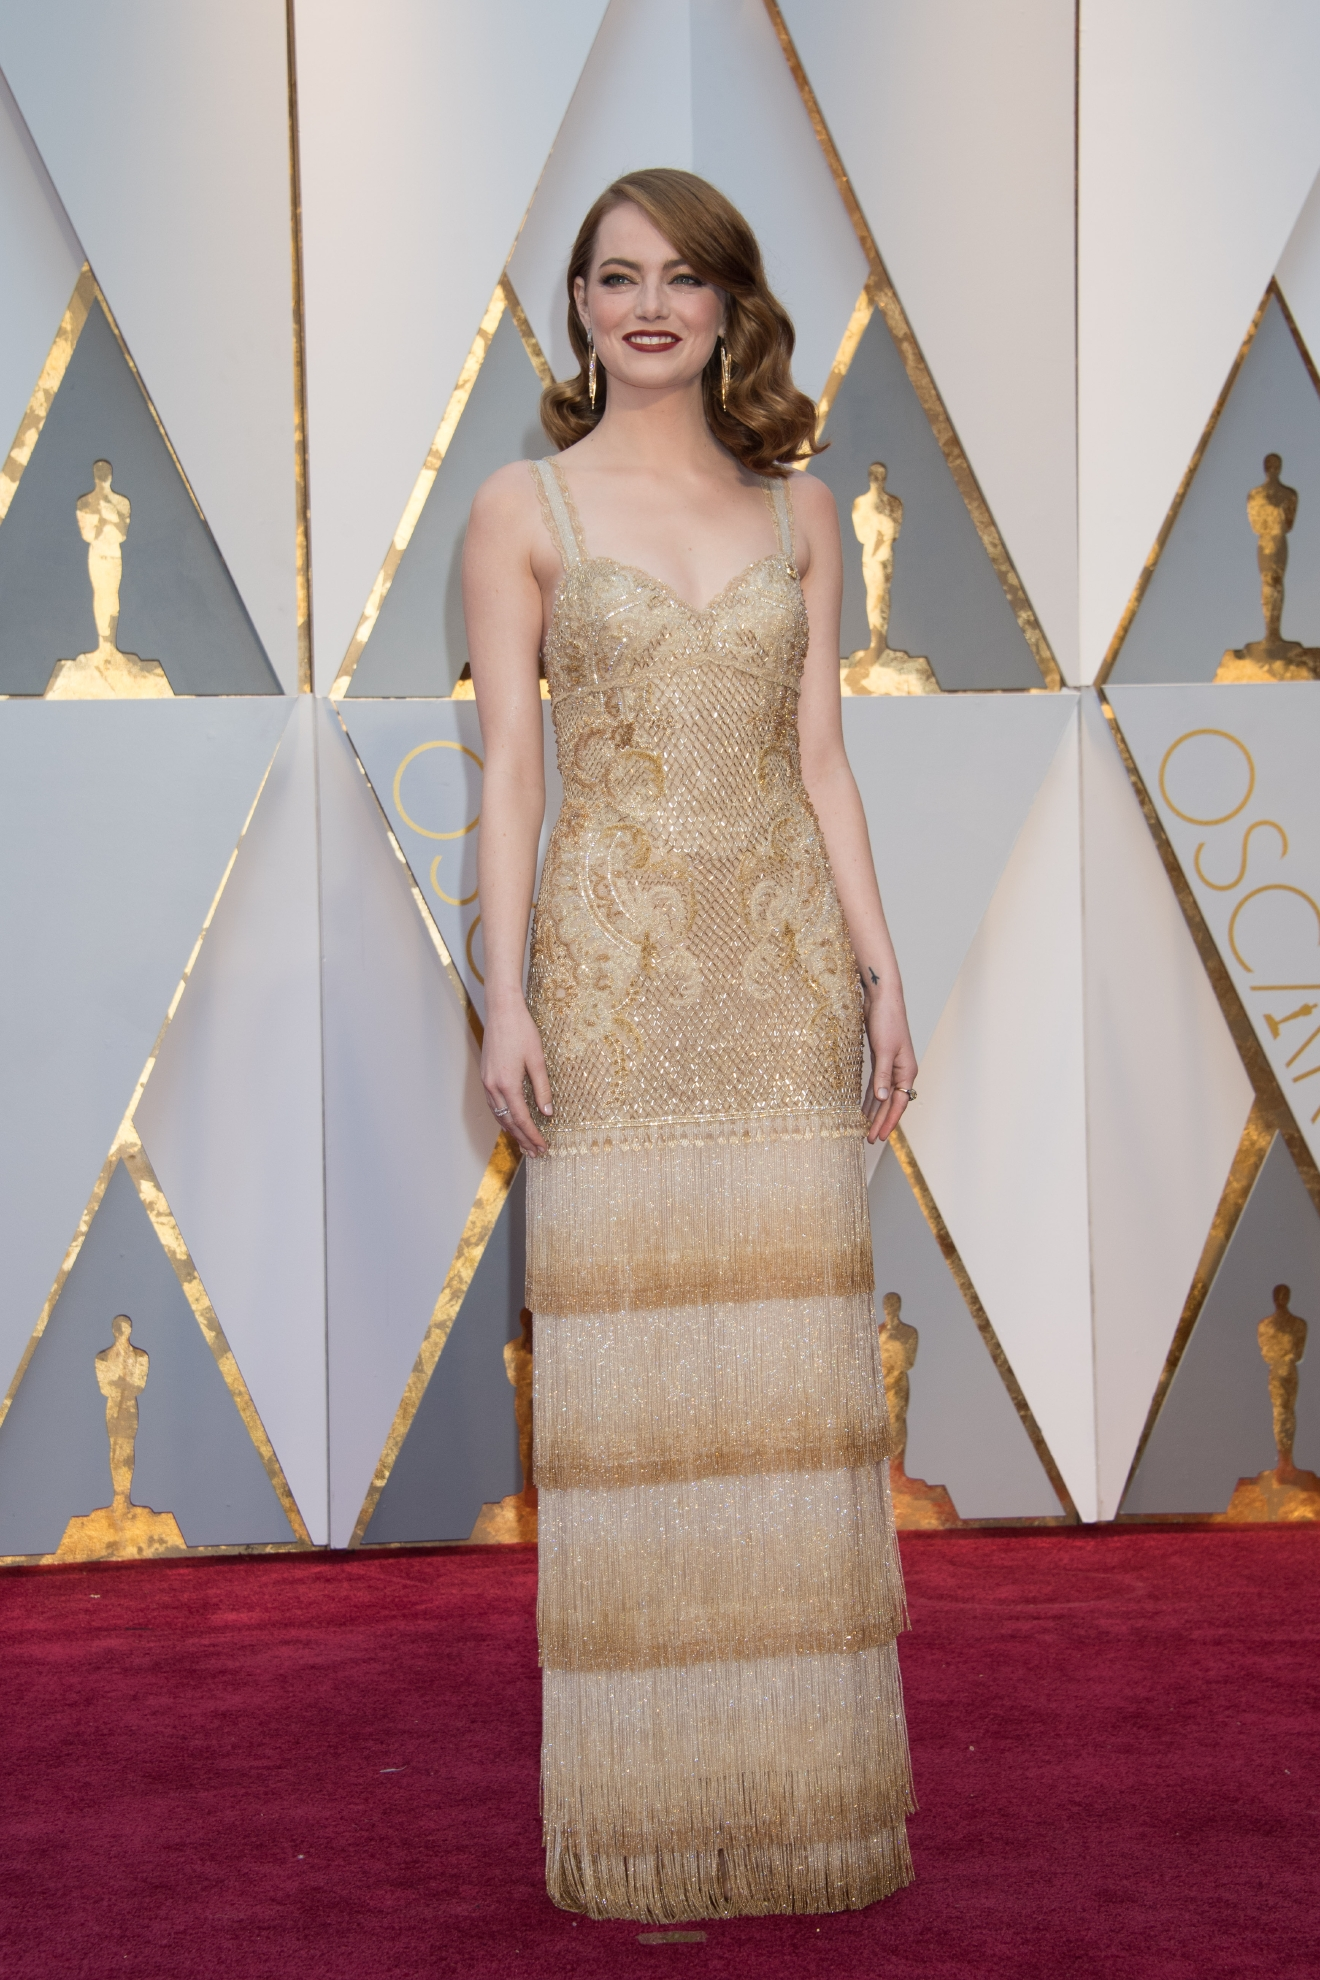 #5: Emma Stone. This nod to her movie, La La Land, is subtle and wonderful. Now that's a dancing dress! (Image: AMPAS)